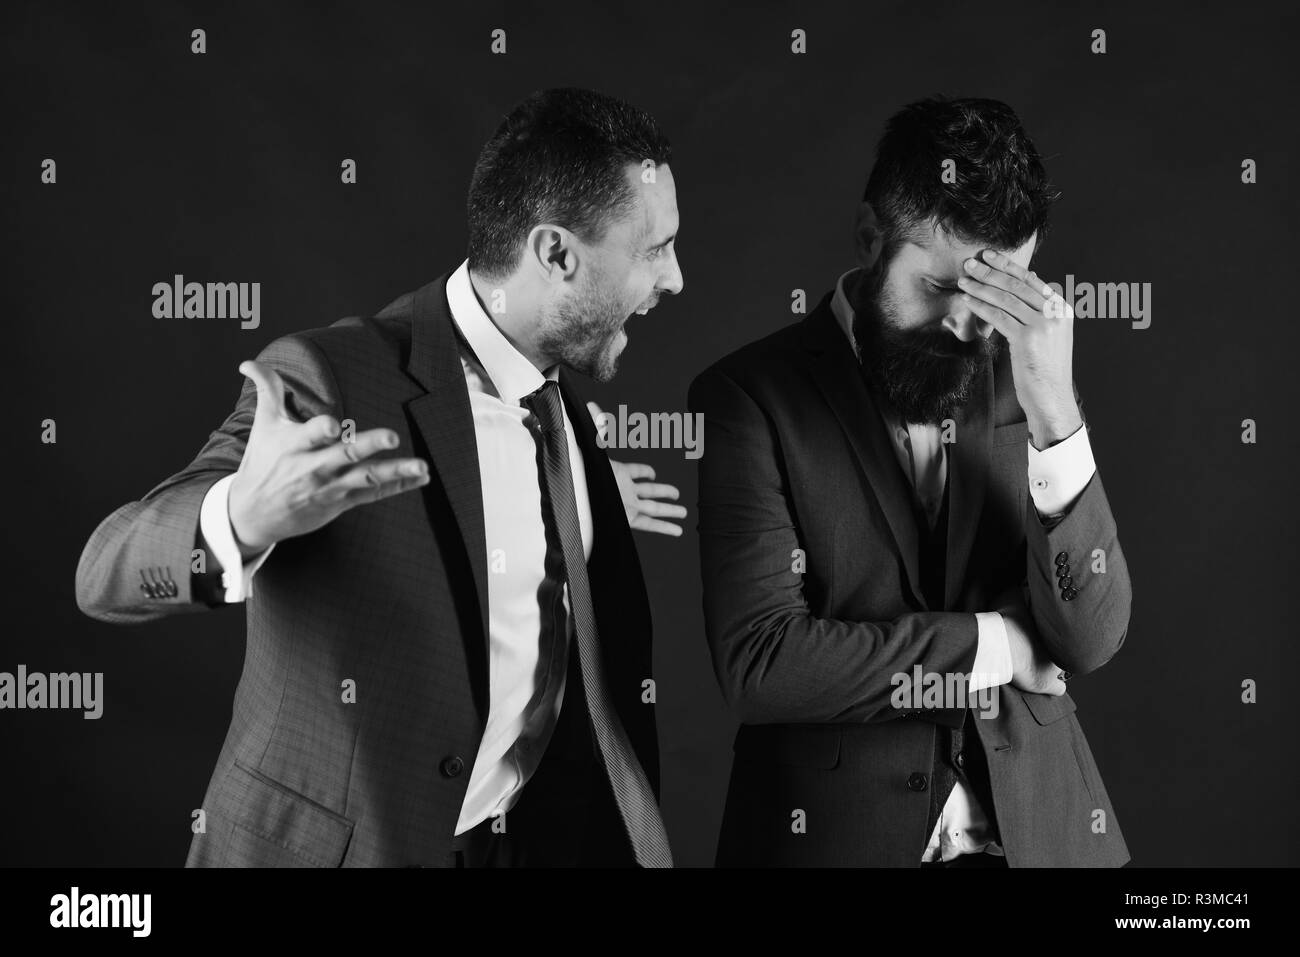 Businessmen quarreling loudly on black background. Business opposition concept - Stock Image